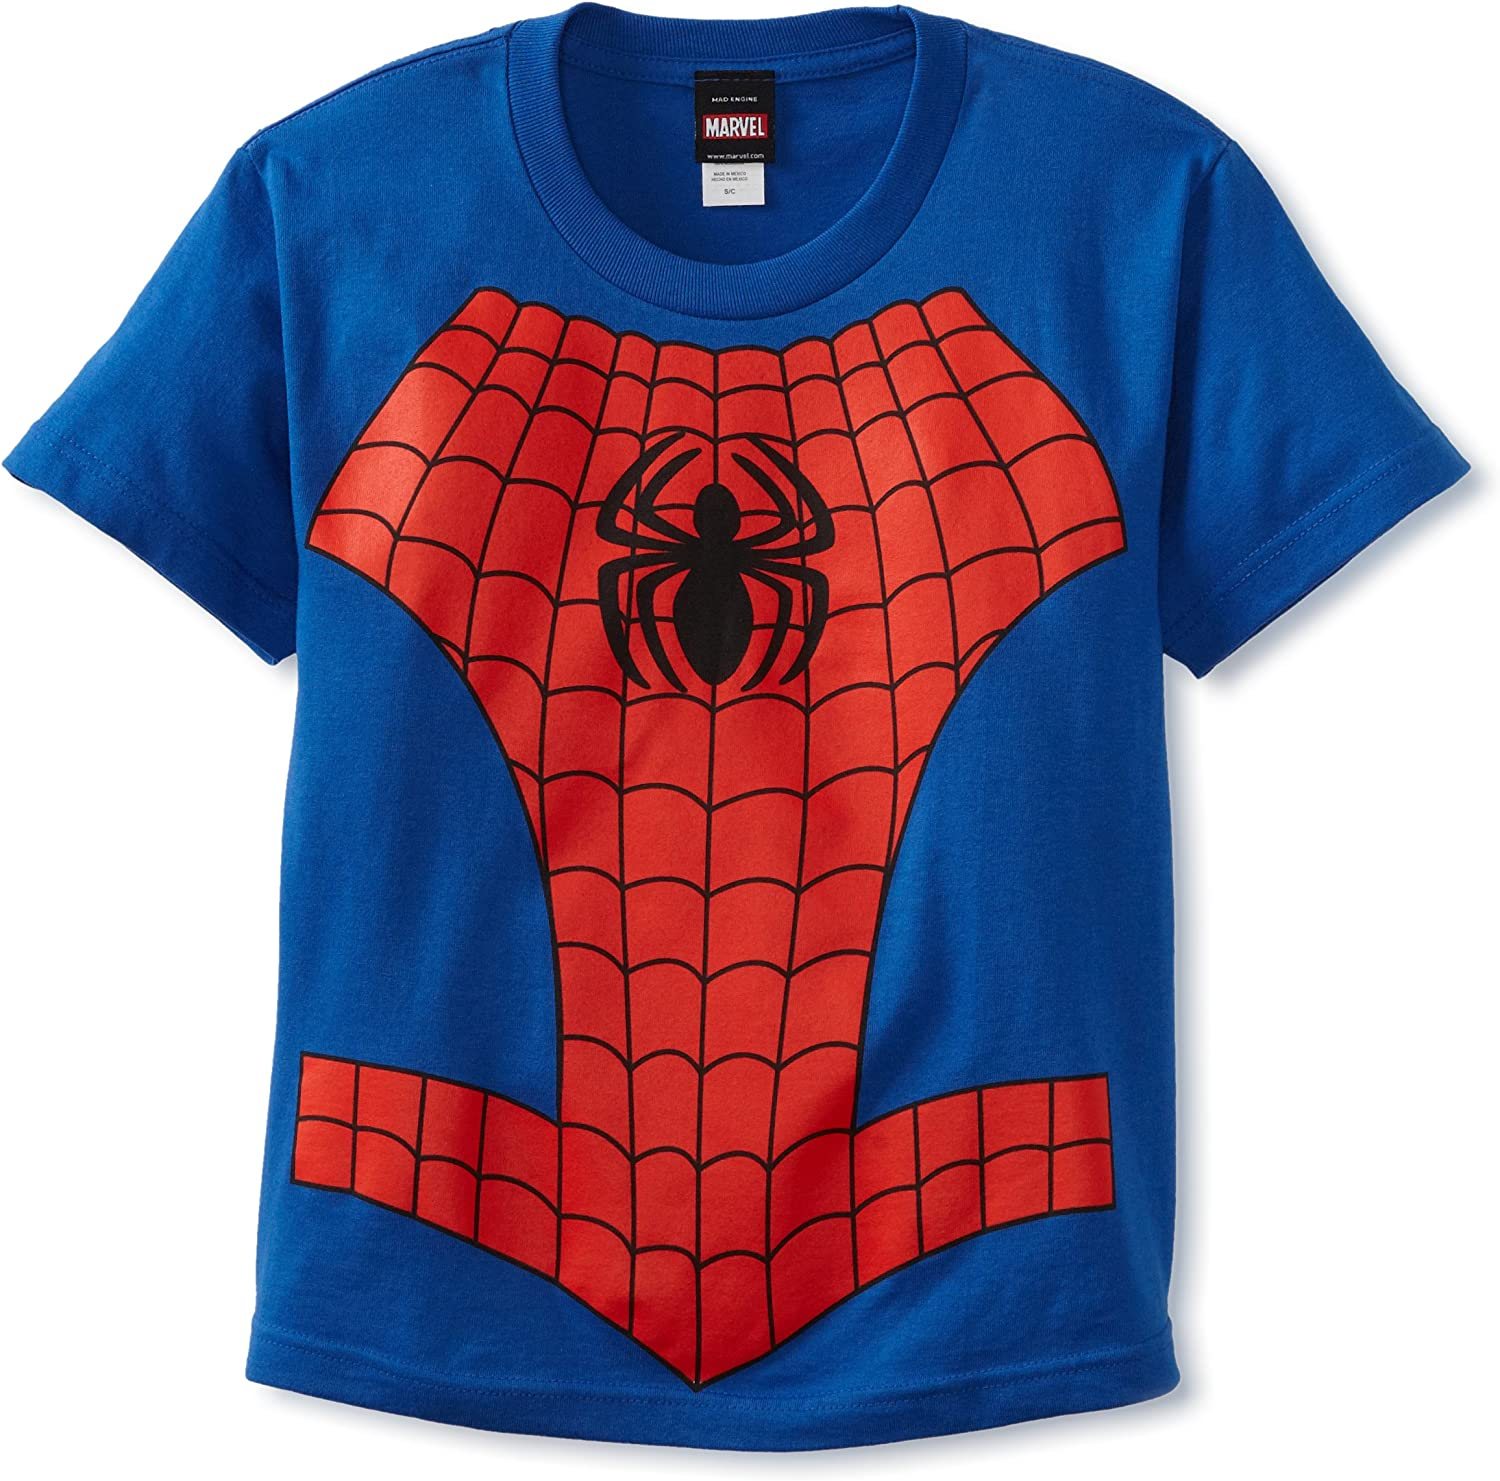 Marvel Spider Man Boys No Cape Toddler Kids T-Shirt New Tee Licensed /& Official